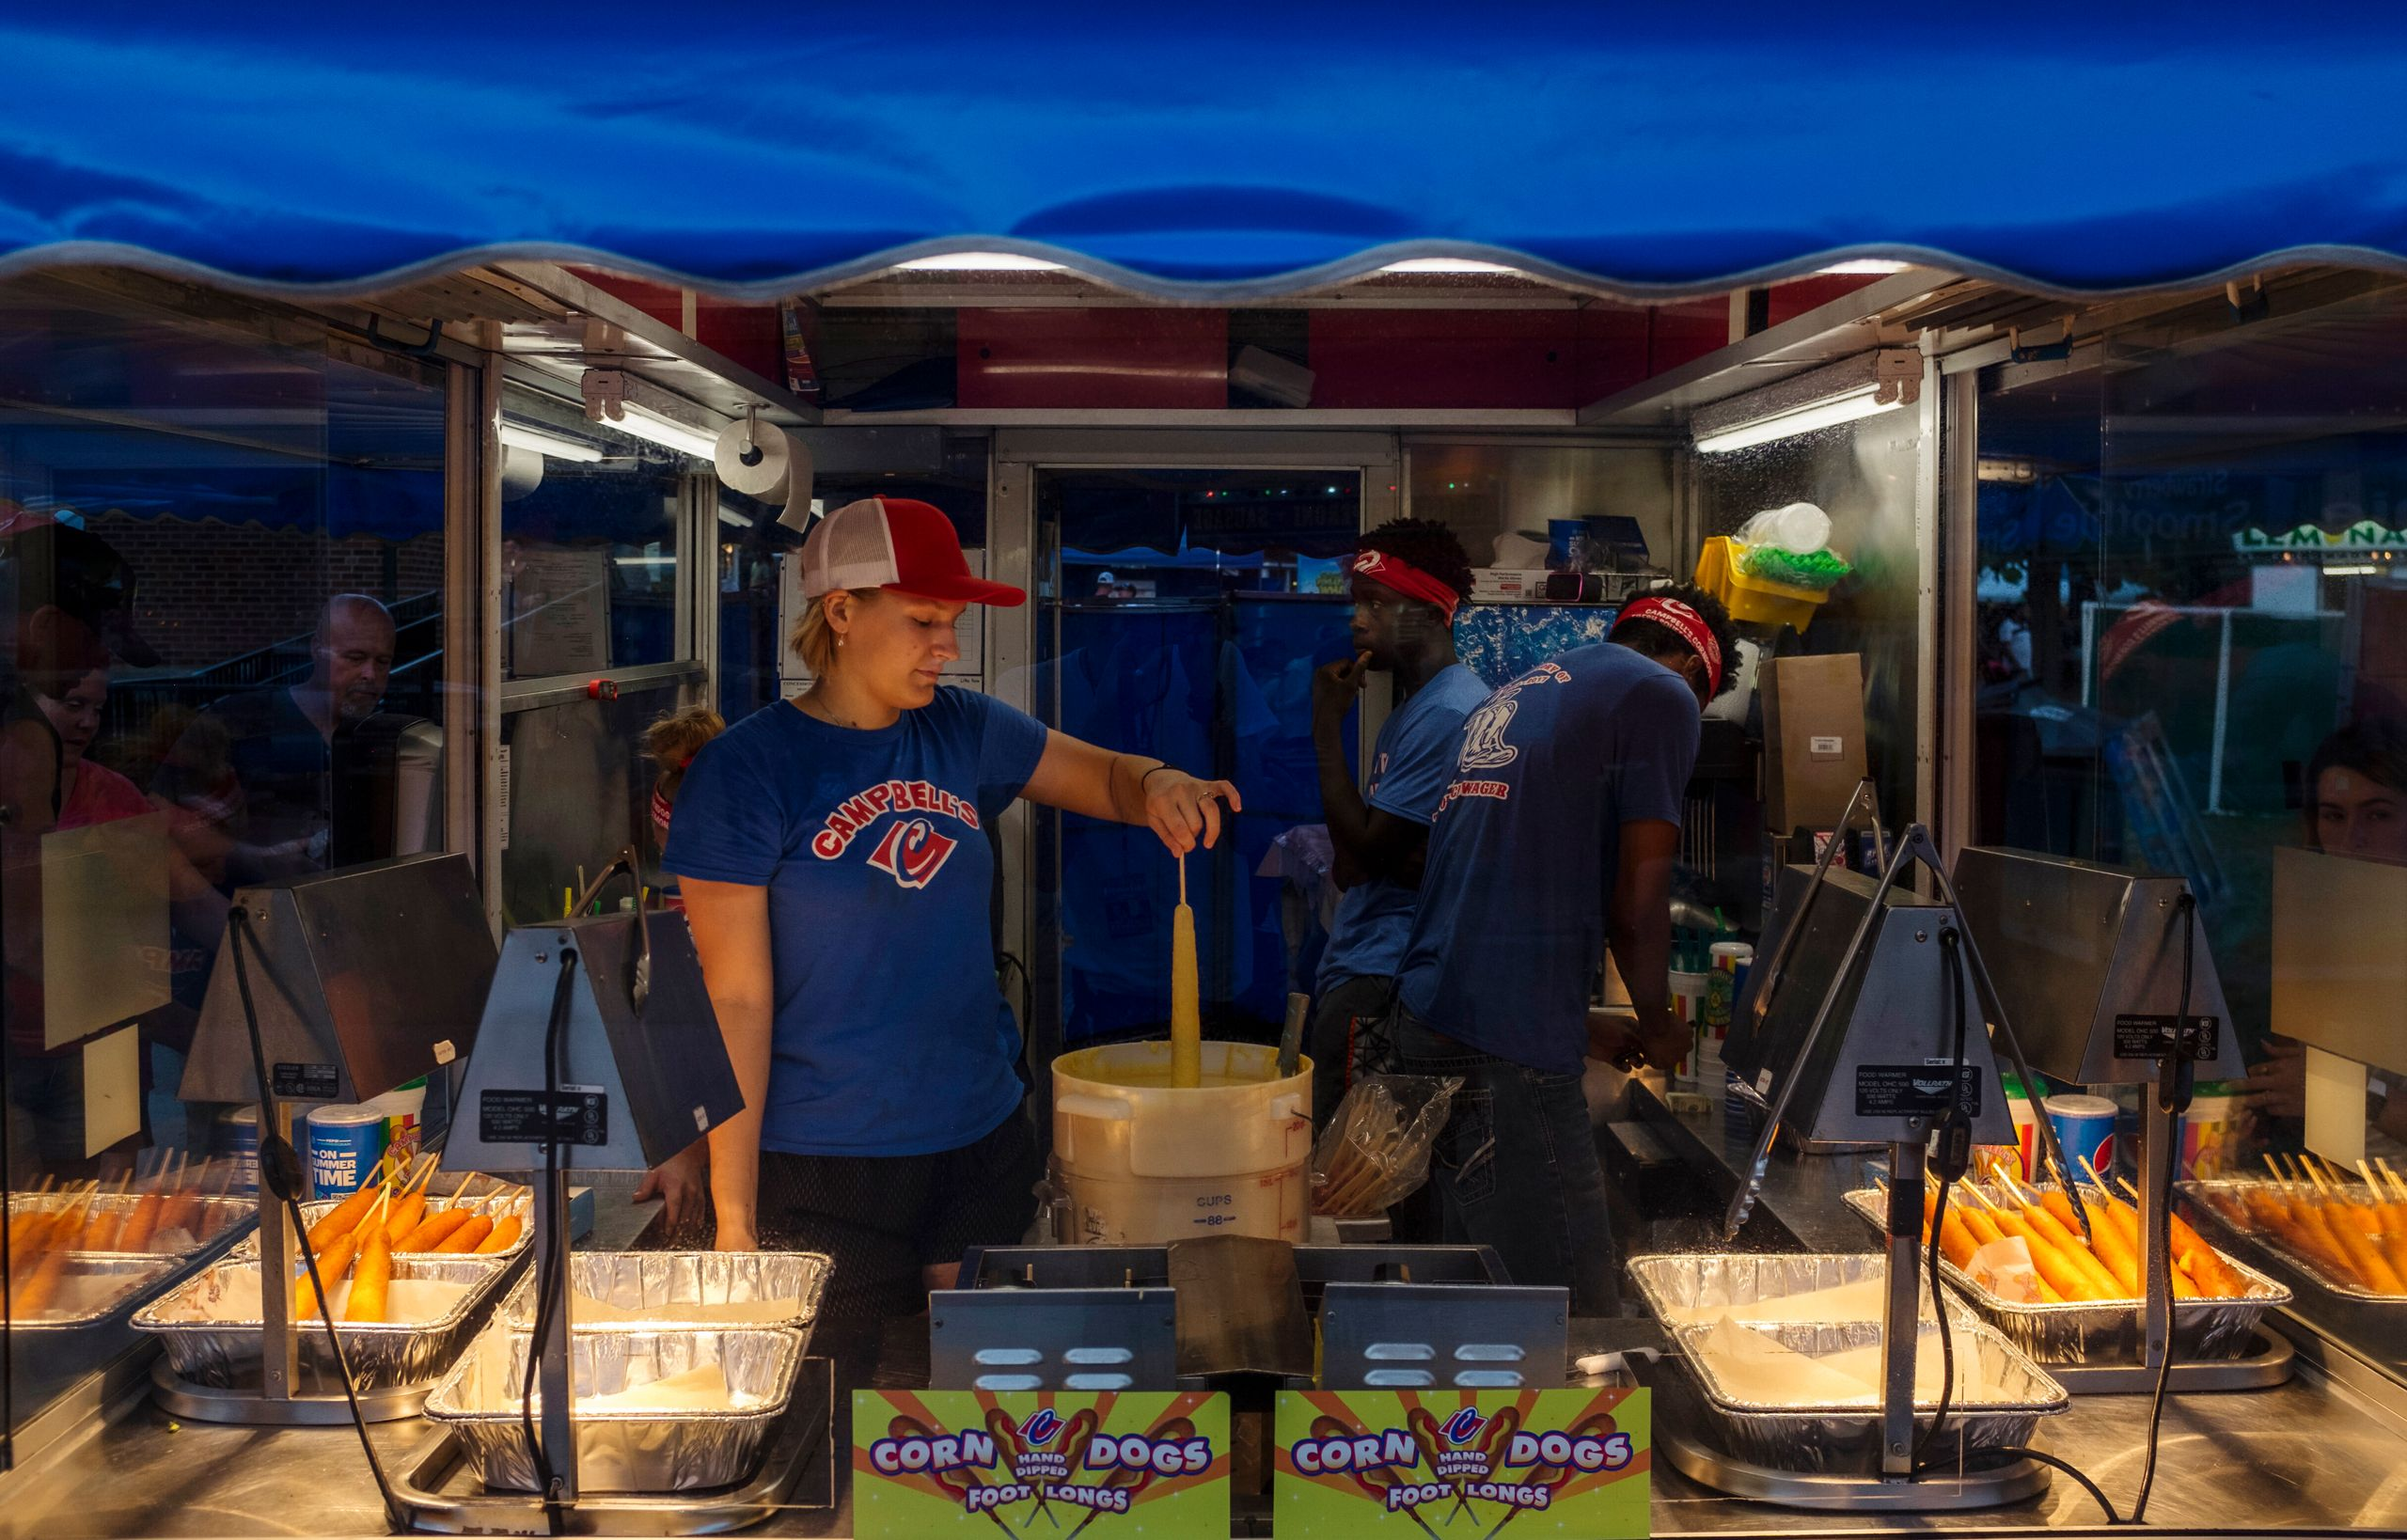 Employees of Campbell's food stand prepare a corndog for the deep-fryer Sunday, Aug. 11, 2019. The Iowa State Fair is k